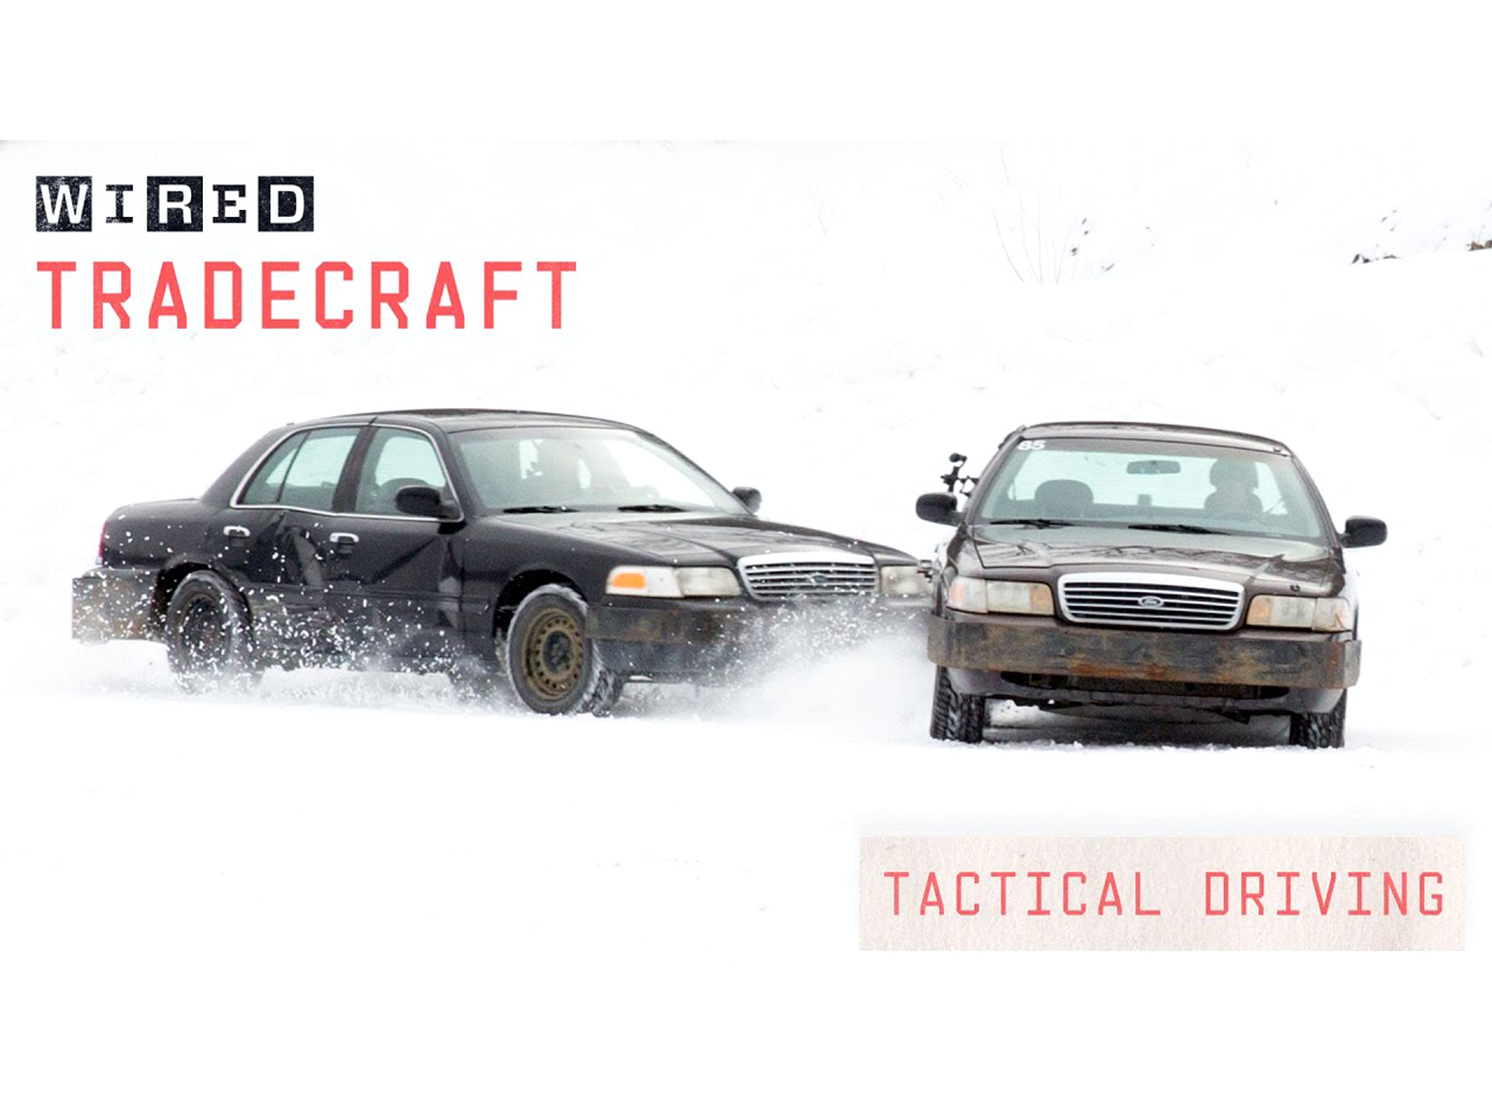 Team O'Neil Rally School drifts the heck out of the Ford Crown Vic thumbnail